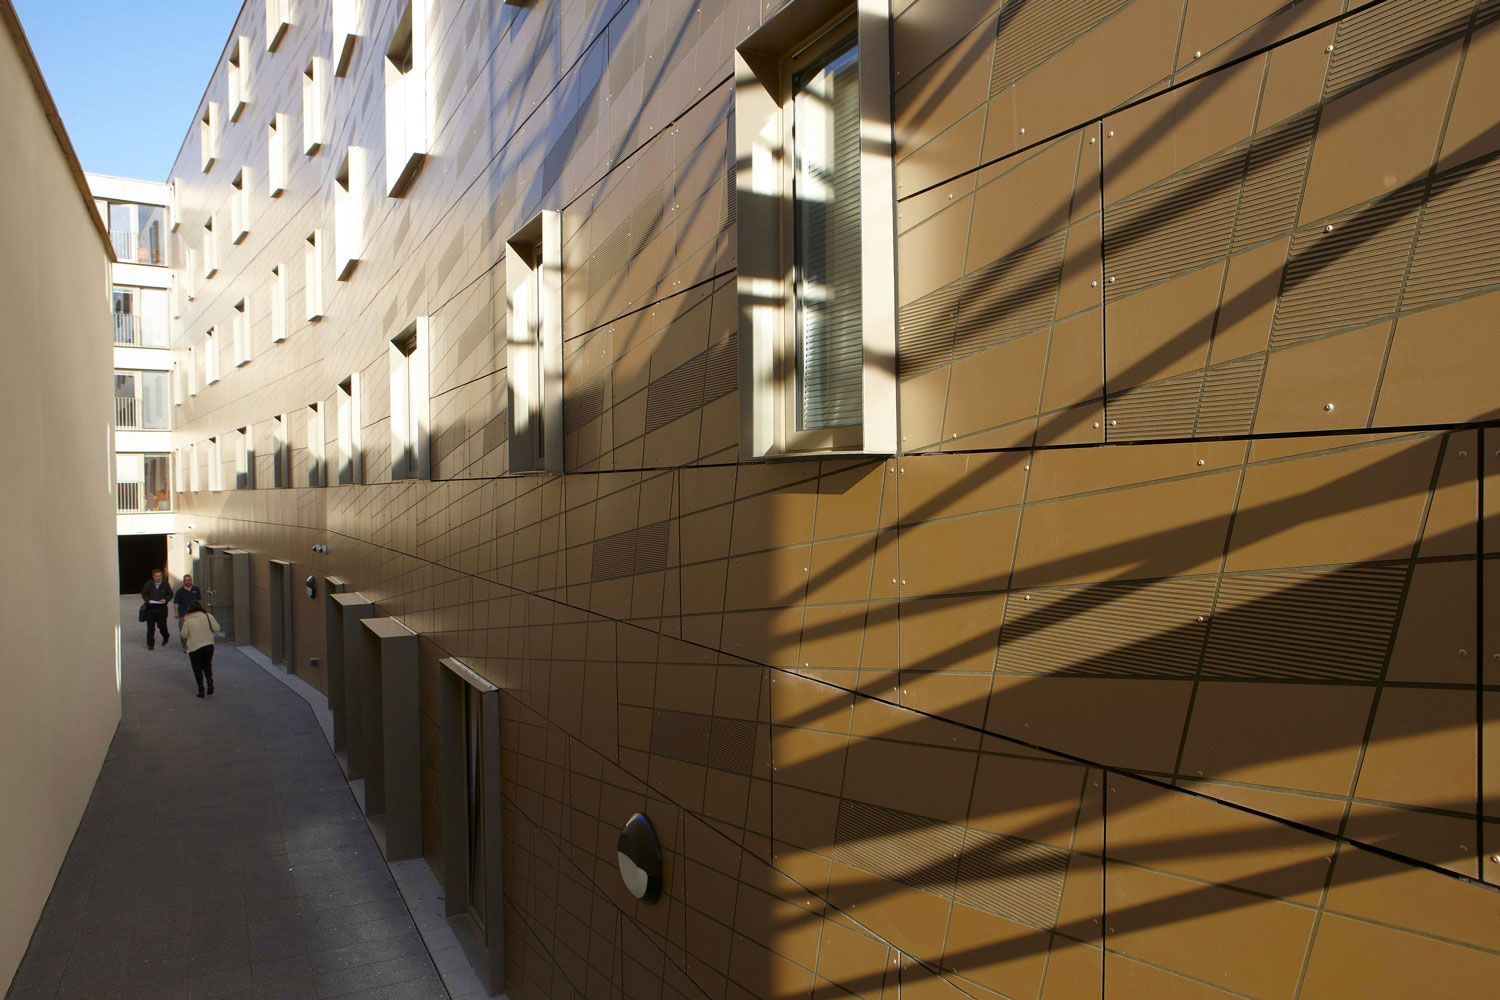 City Block Student Accommodation, Lancaster | Architectural Installation Photography